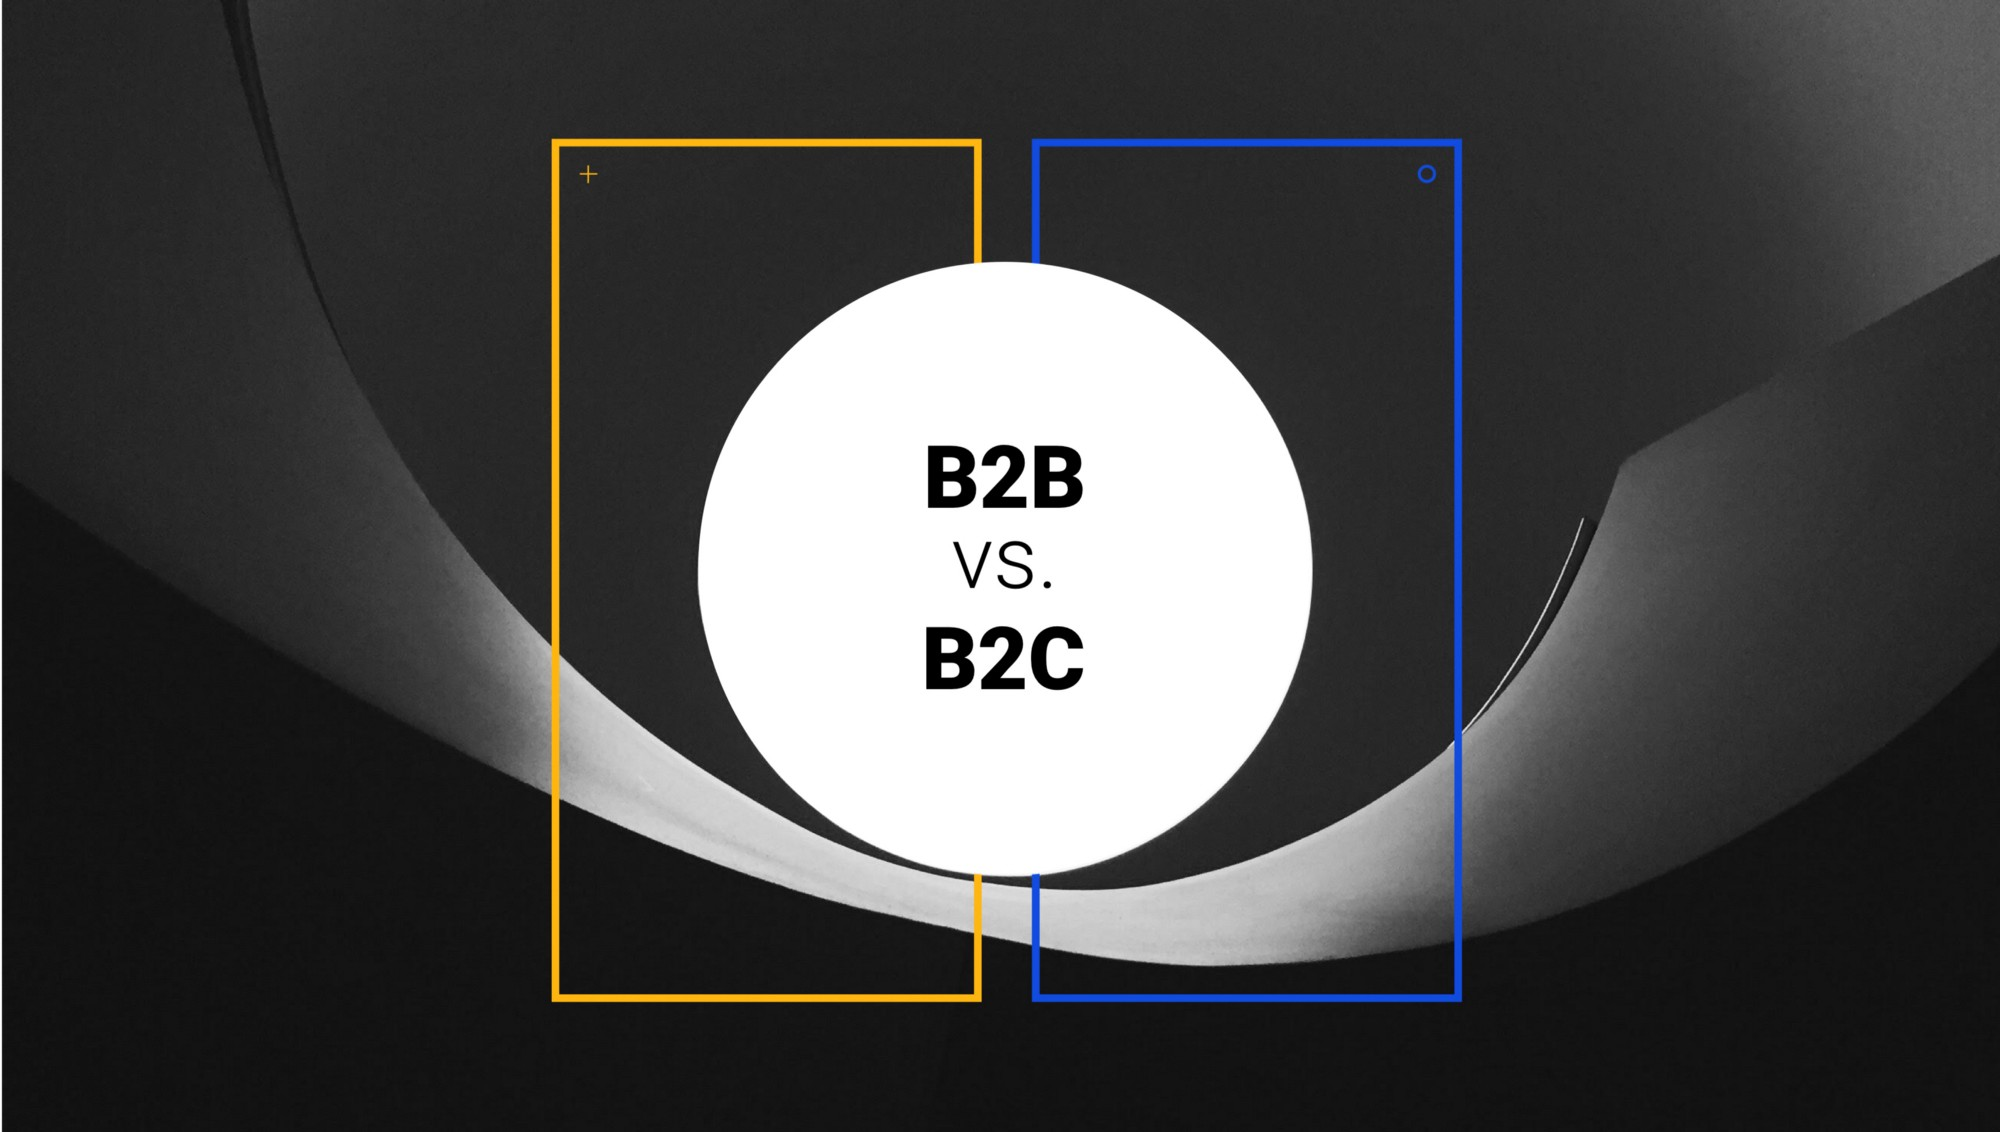 Abstract cover showing B2B against B2C design for e-commerce websites.